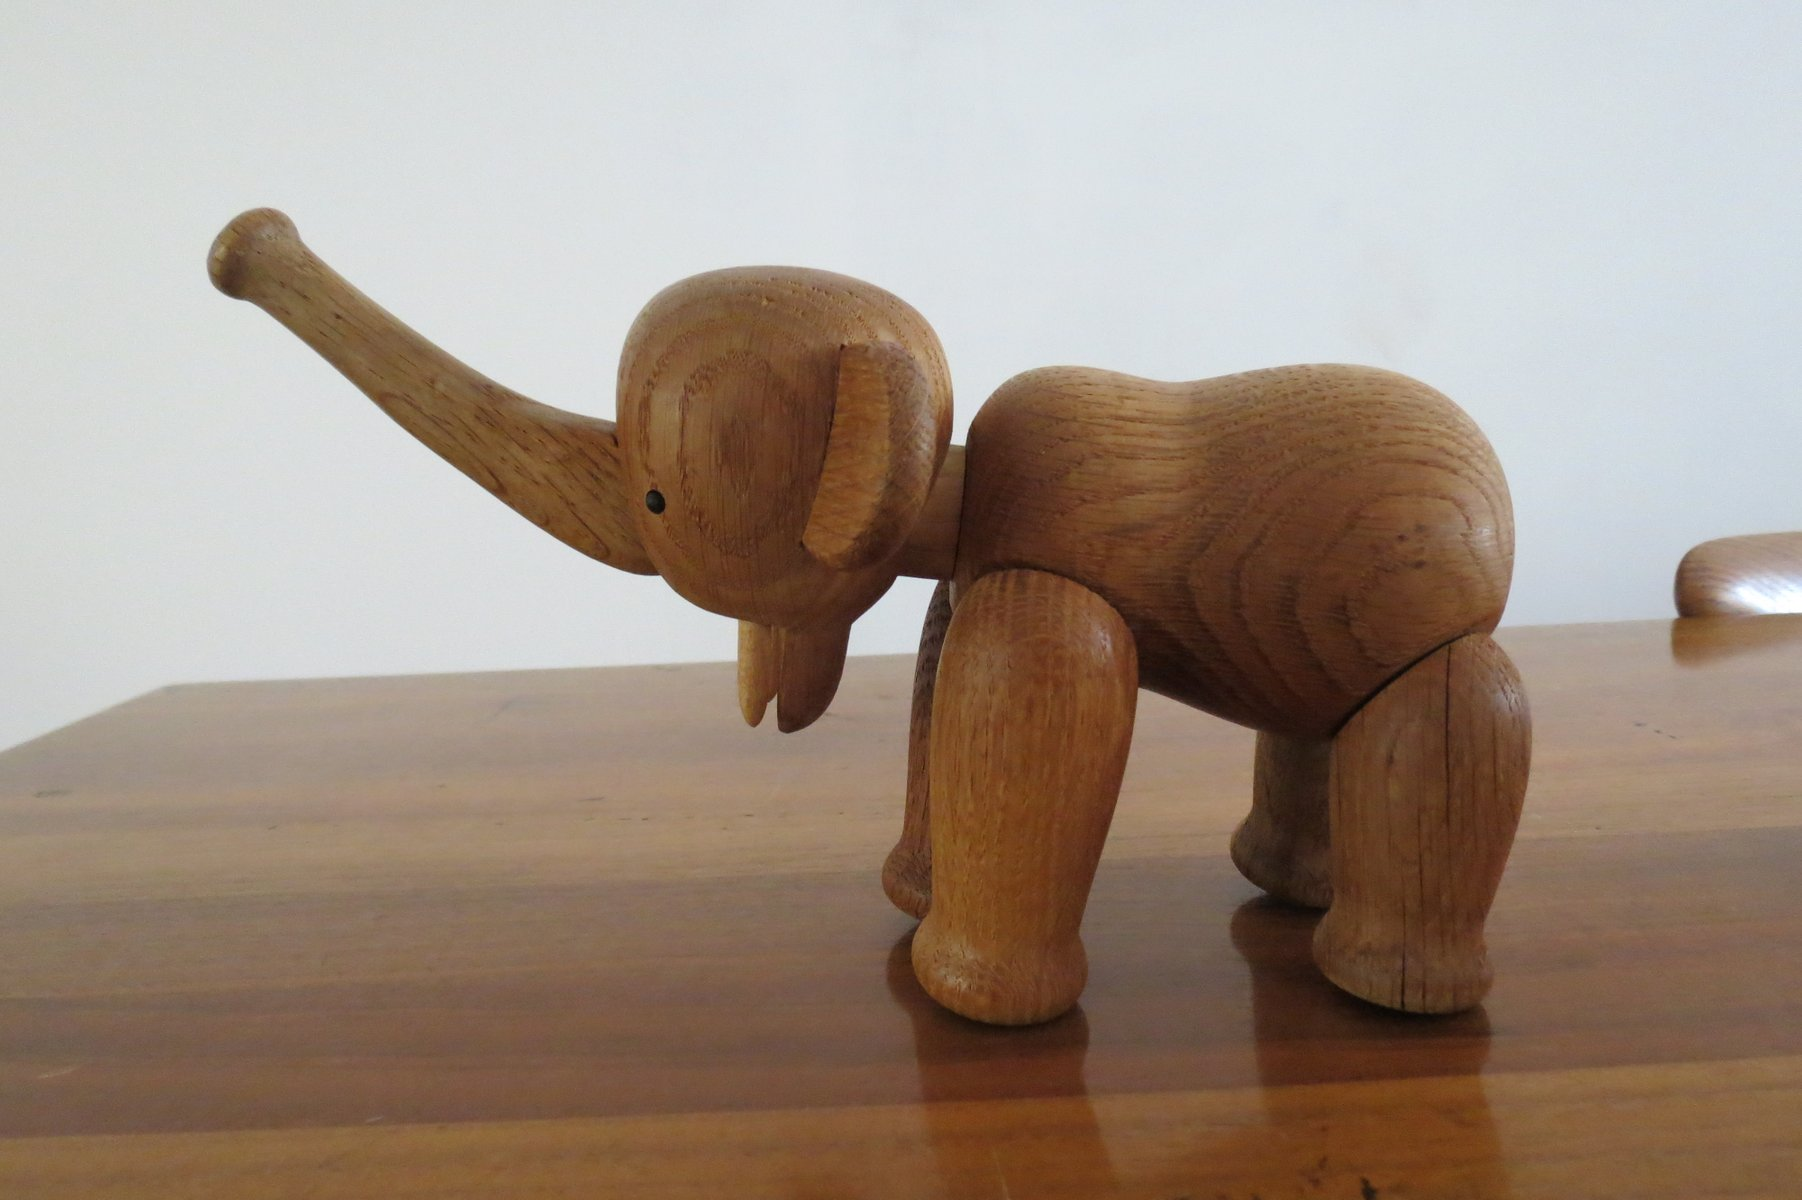 Vintage Elephant by Kay Bojesen, 1970s for sale at Pamono